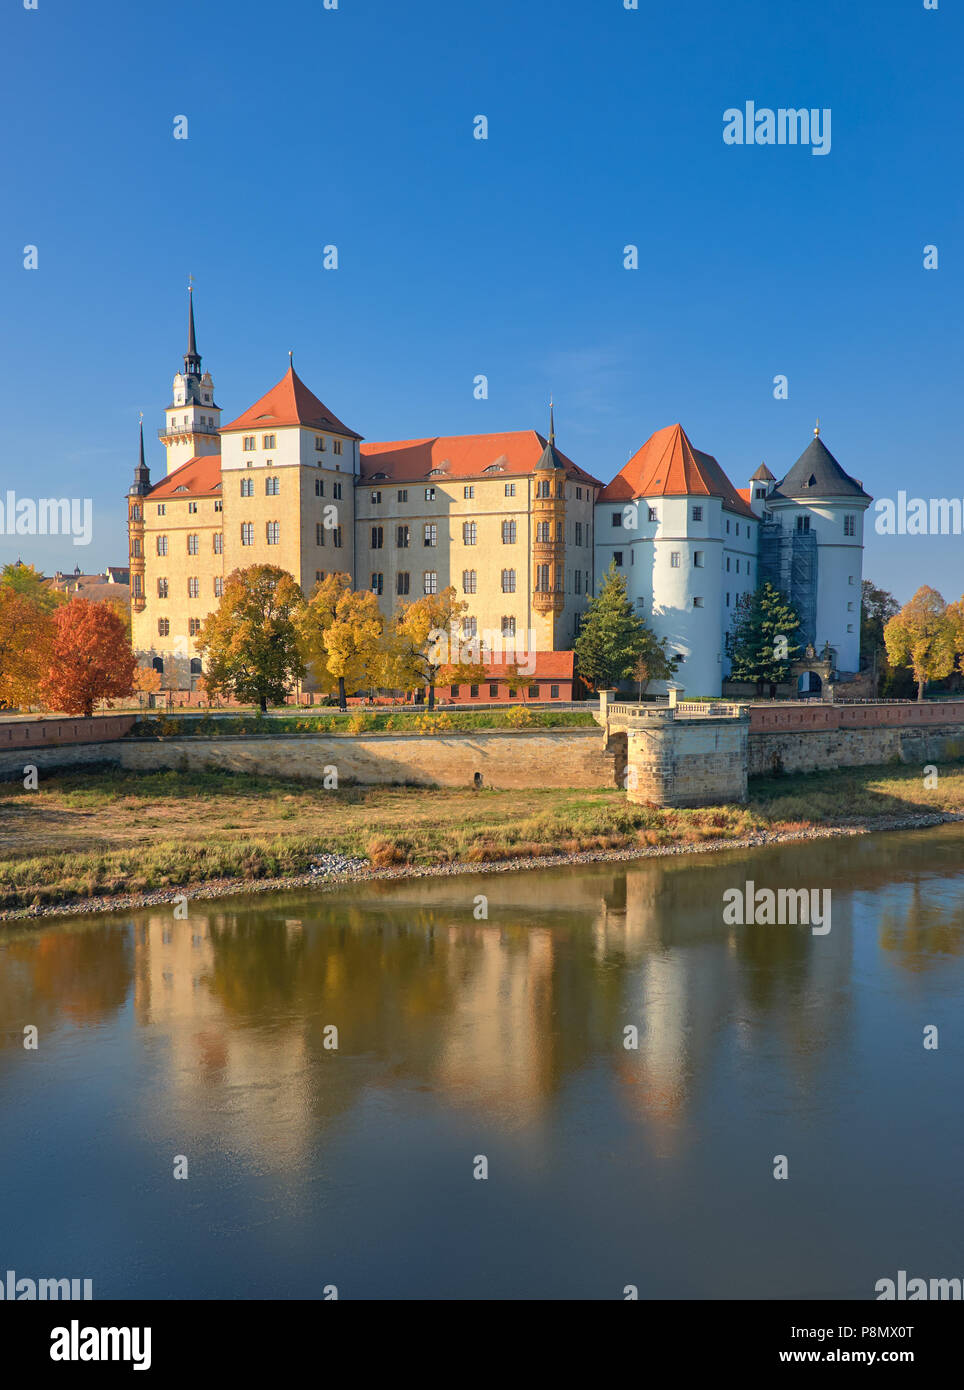 Hartenfels castle in Torgau, a town on the banks of the Elbe in northwestern Saxony, Germany Stock Photo